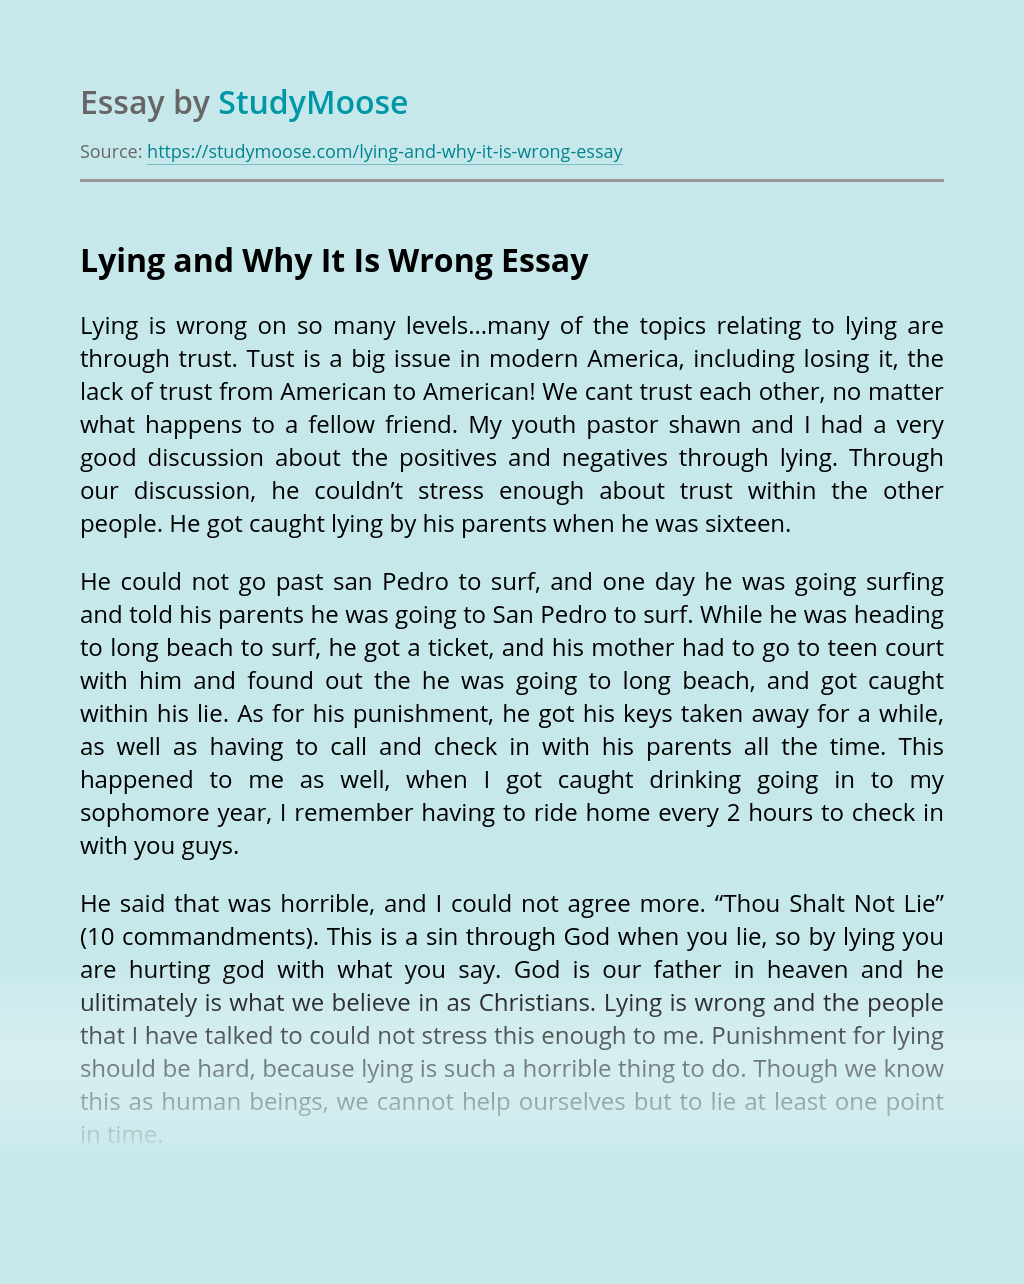 Lying and Why It Is Wrong